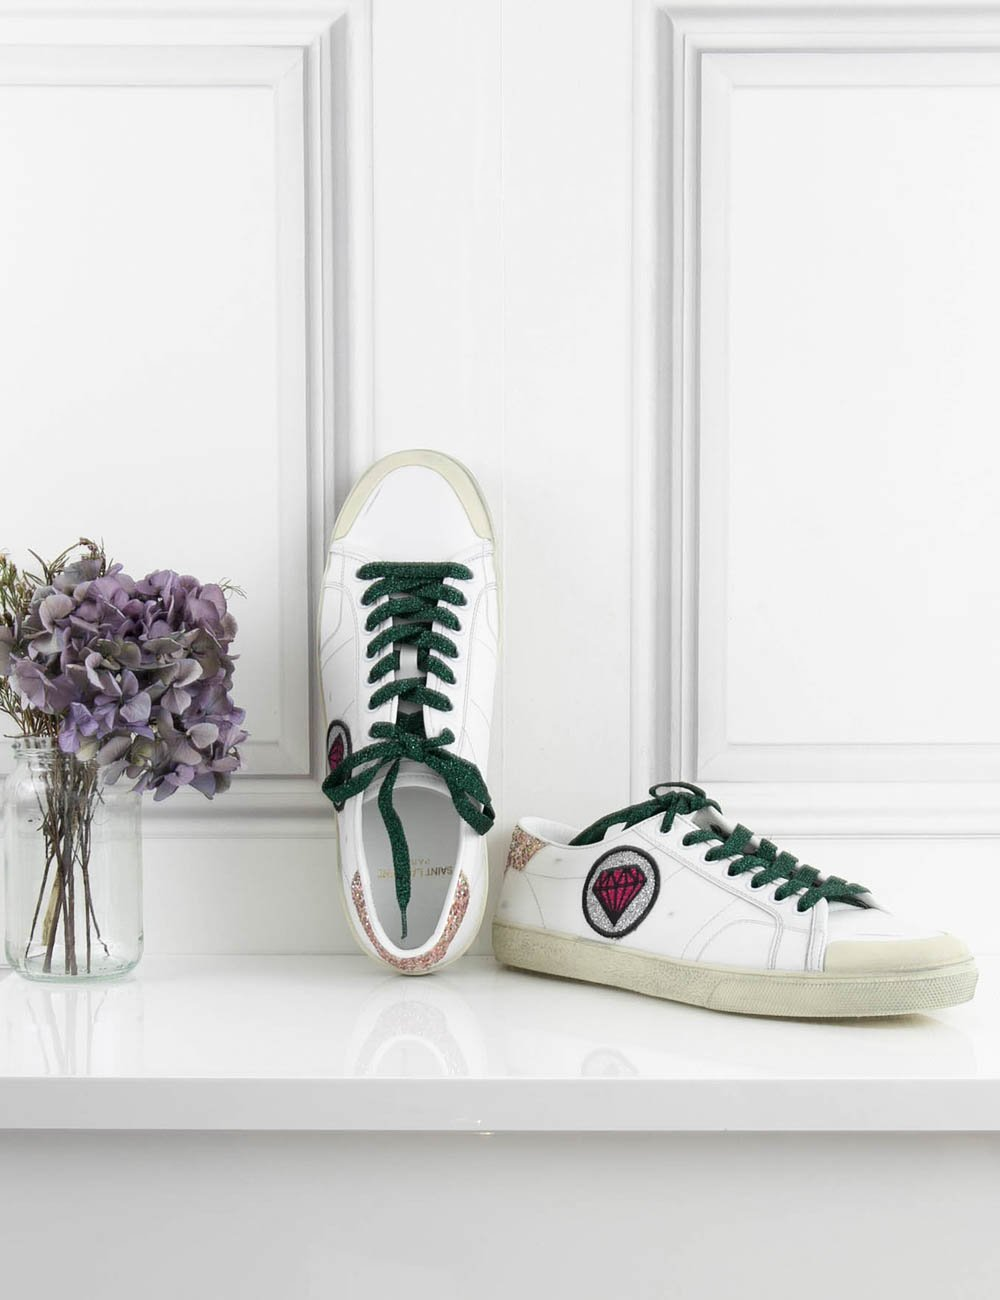 SAINT LAURENT Shoes Sneakers with diamond motif